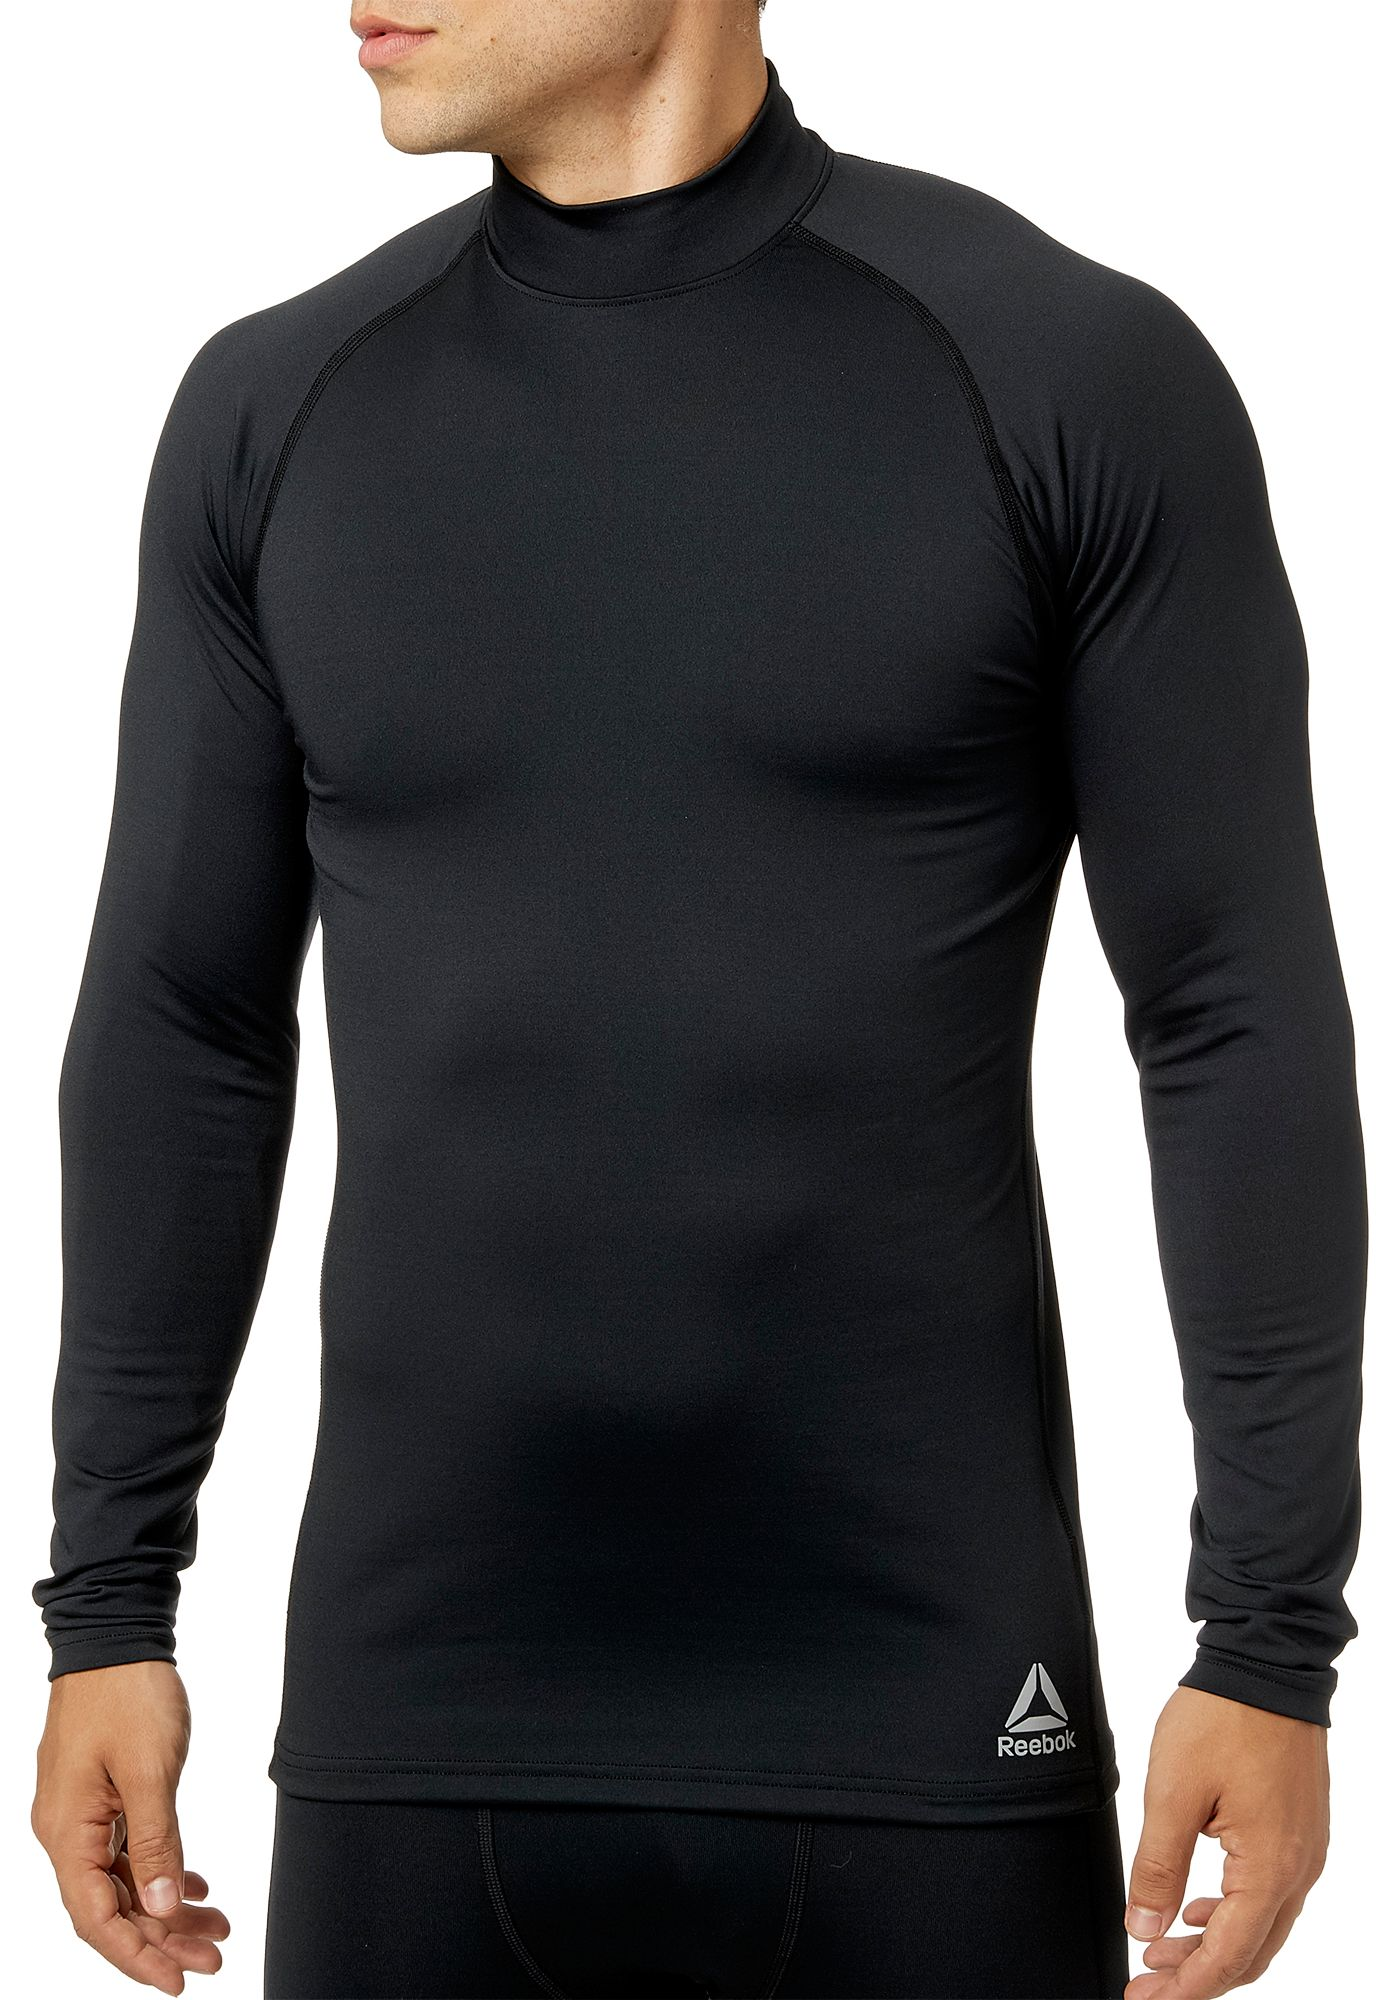 Reebok Men's Cold Weather Compression Mock Neck Long Sleeve Shirt